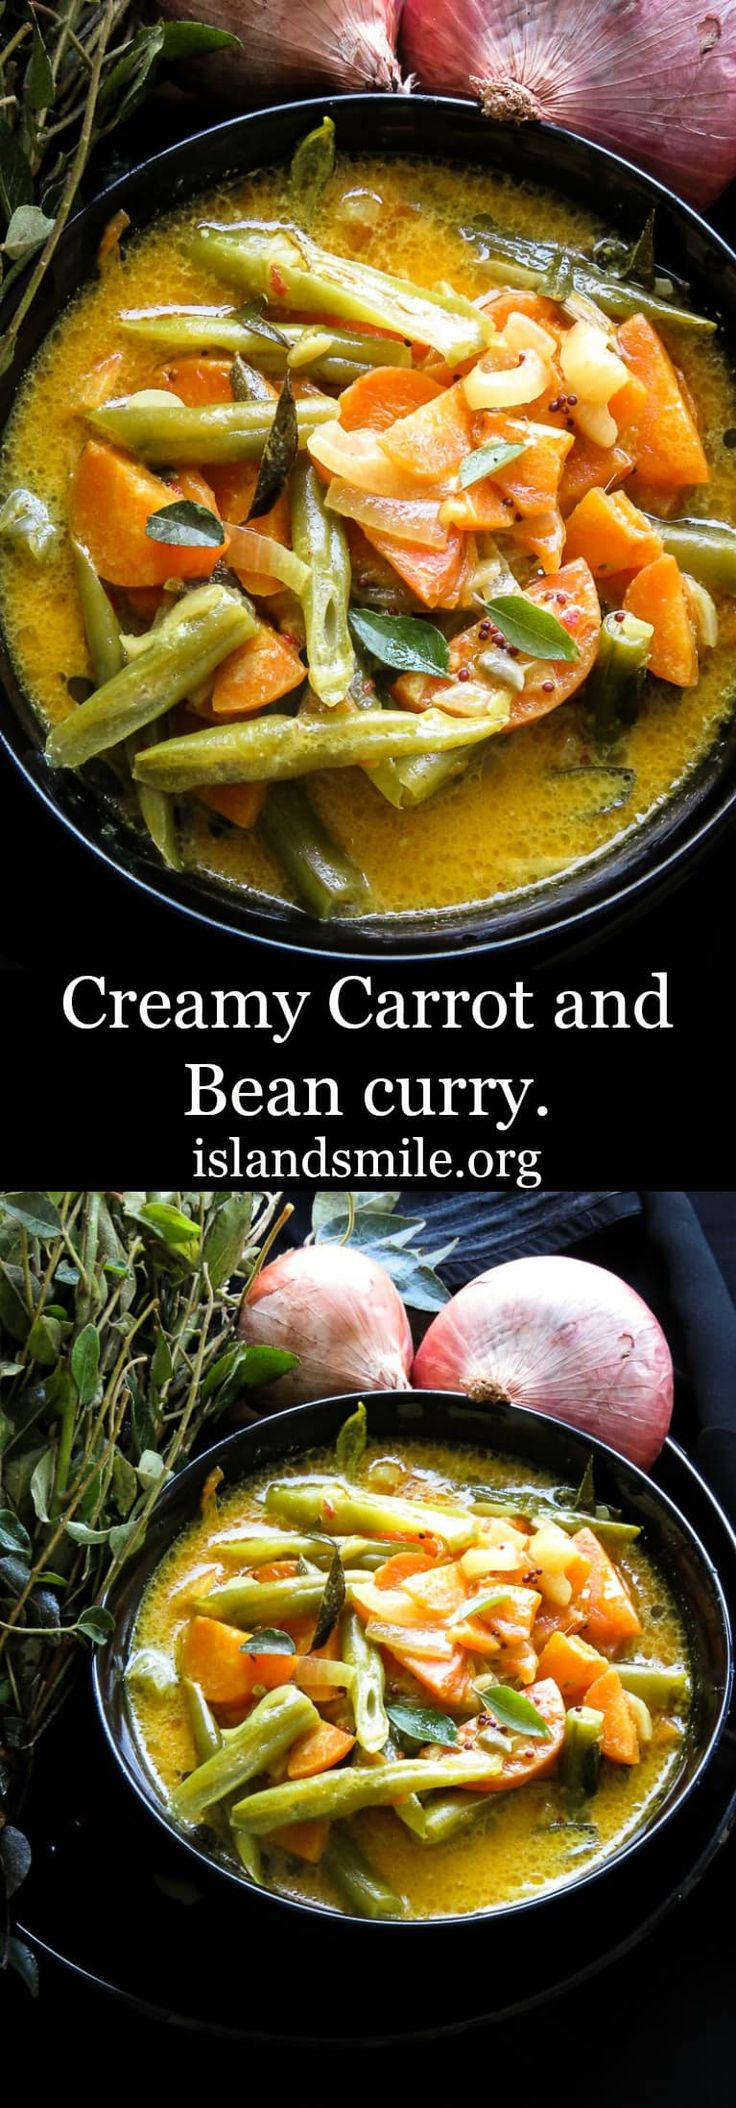 Creamy carrot and Bean curry, a mildly spiced recipe for kids to enjoy. a Vegan, vegetarian dish to try. #vegan #recipe #cooking #kids #srilankan #coconutmilk #curry #glutenfree #lowcarbre